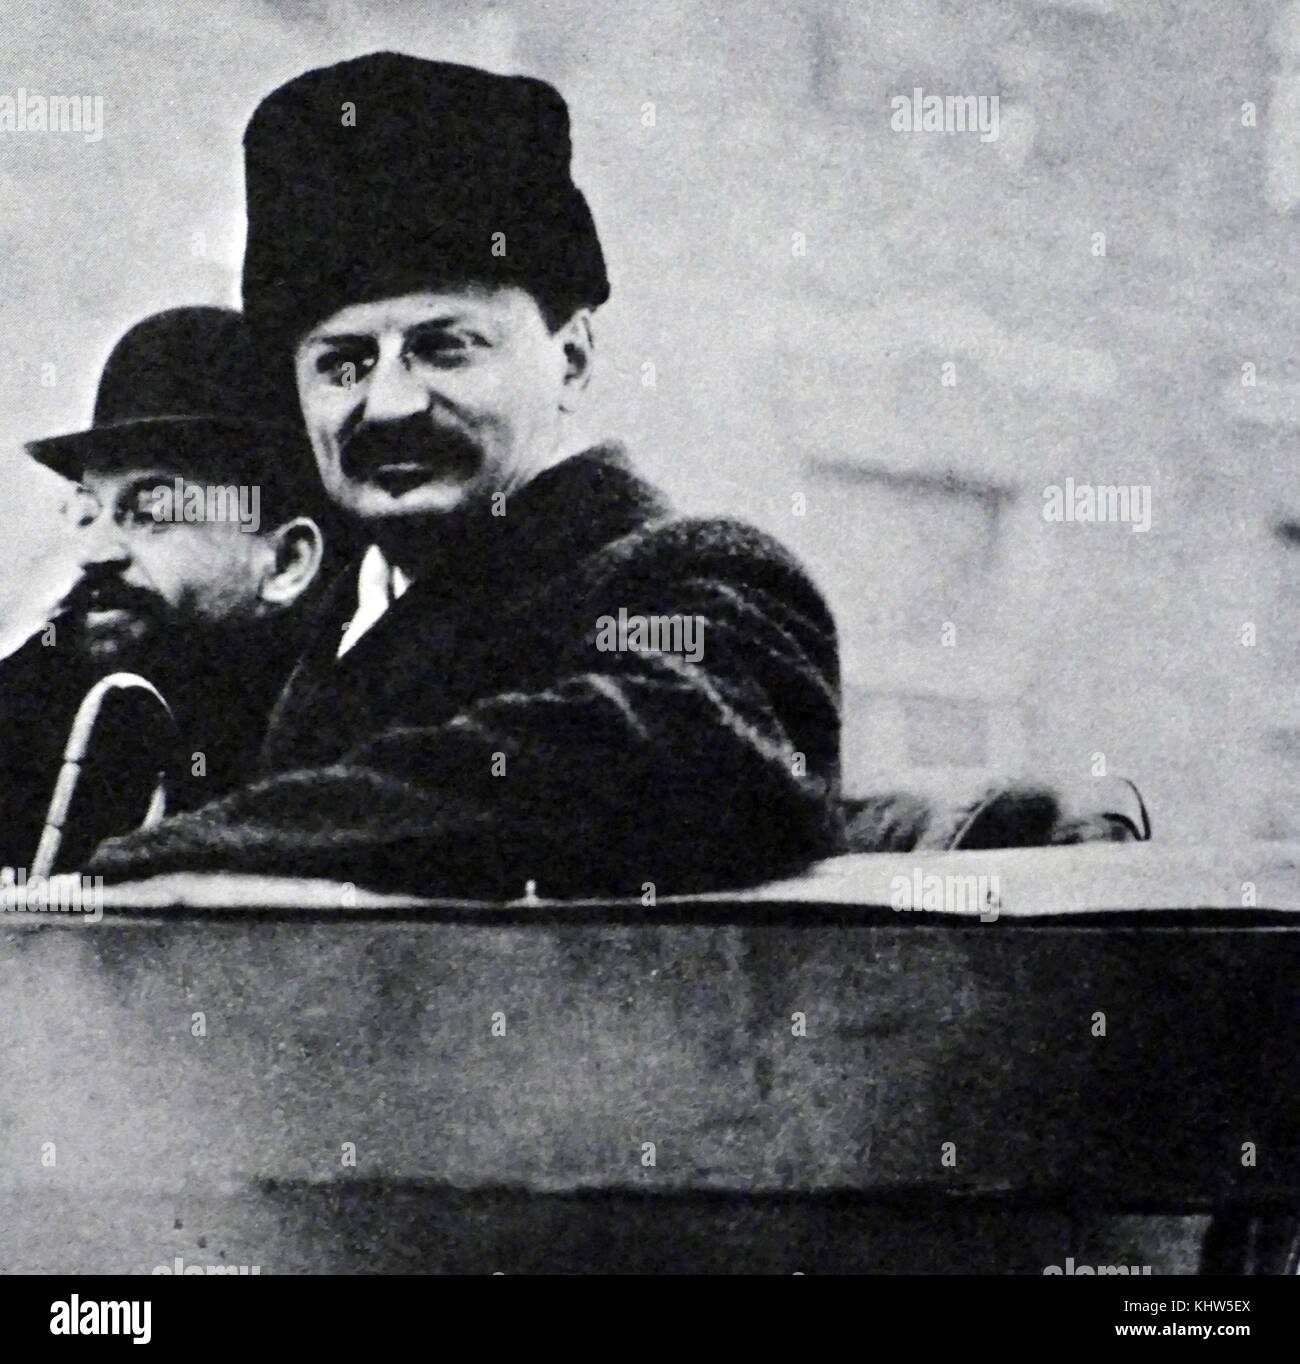 Photograph of Leon Trotsky during the Treaty of Brest-Litovsk, a peace treaty signed on 3 March 1918 between the - Stock Image